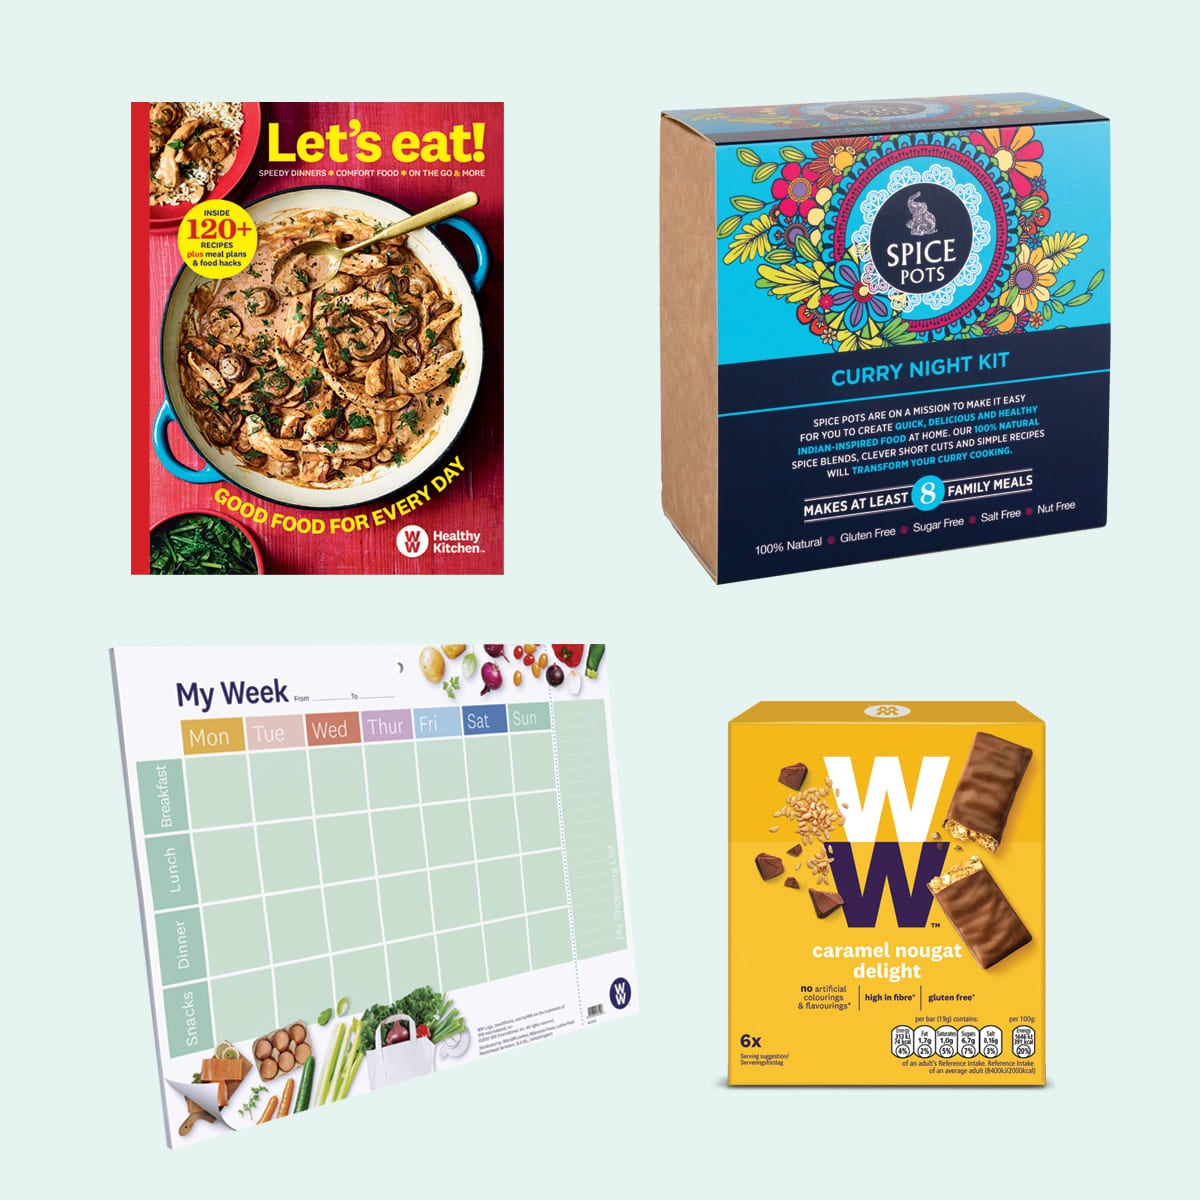 WW Green Kit, include Let's Eat cookbook, Meal Planner Pad, Curry Night Kit, Caramel Nougat Delight